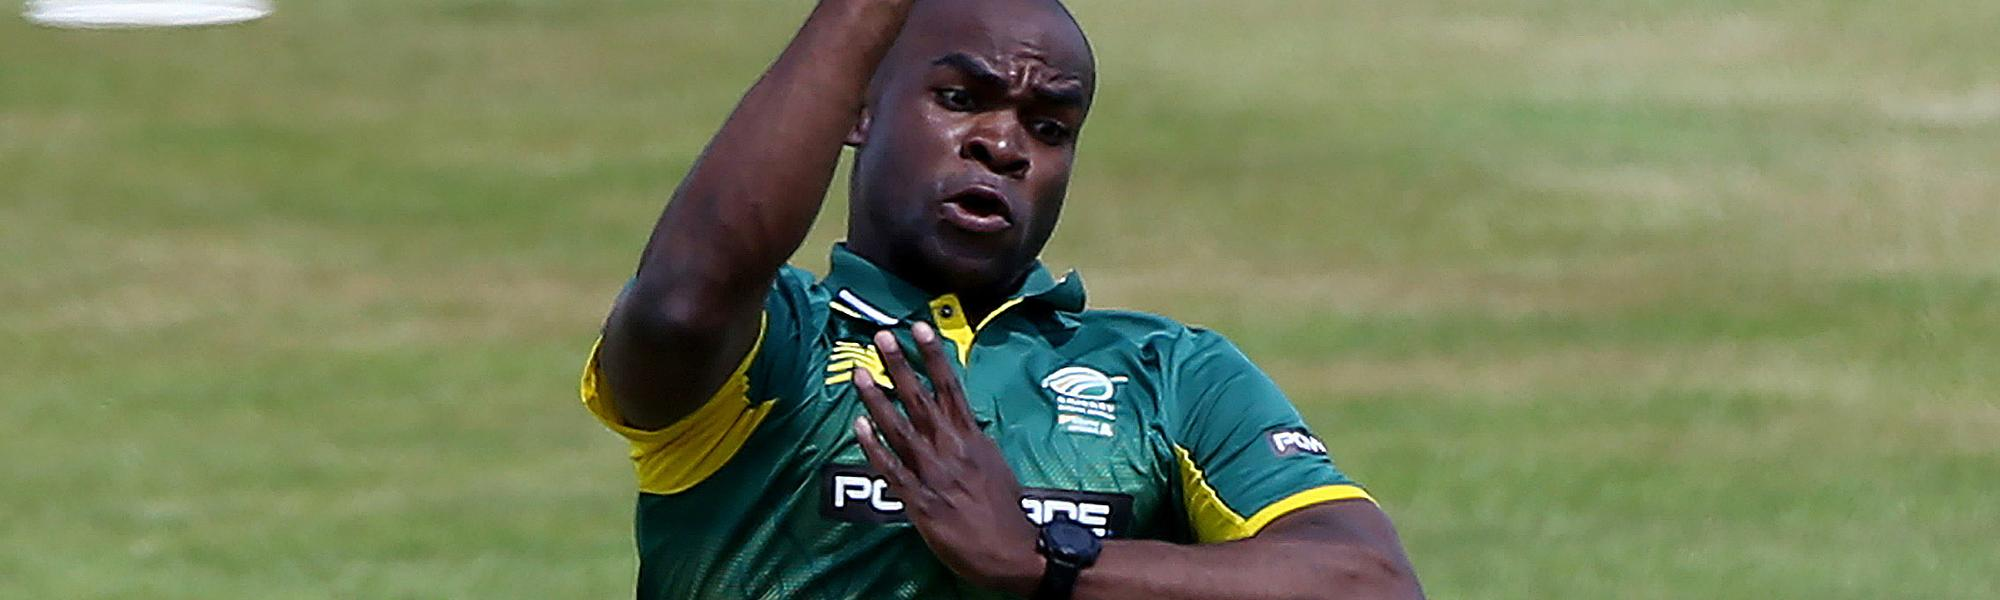 Junior Dala is one of the new faces in the South Africa T20I squad